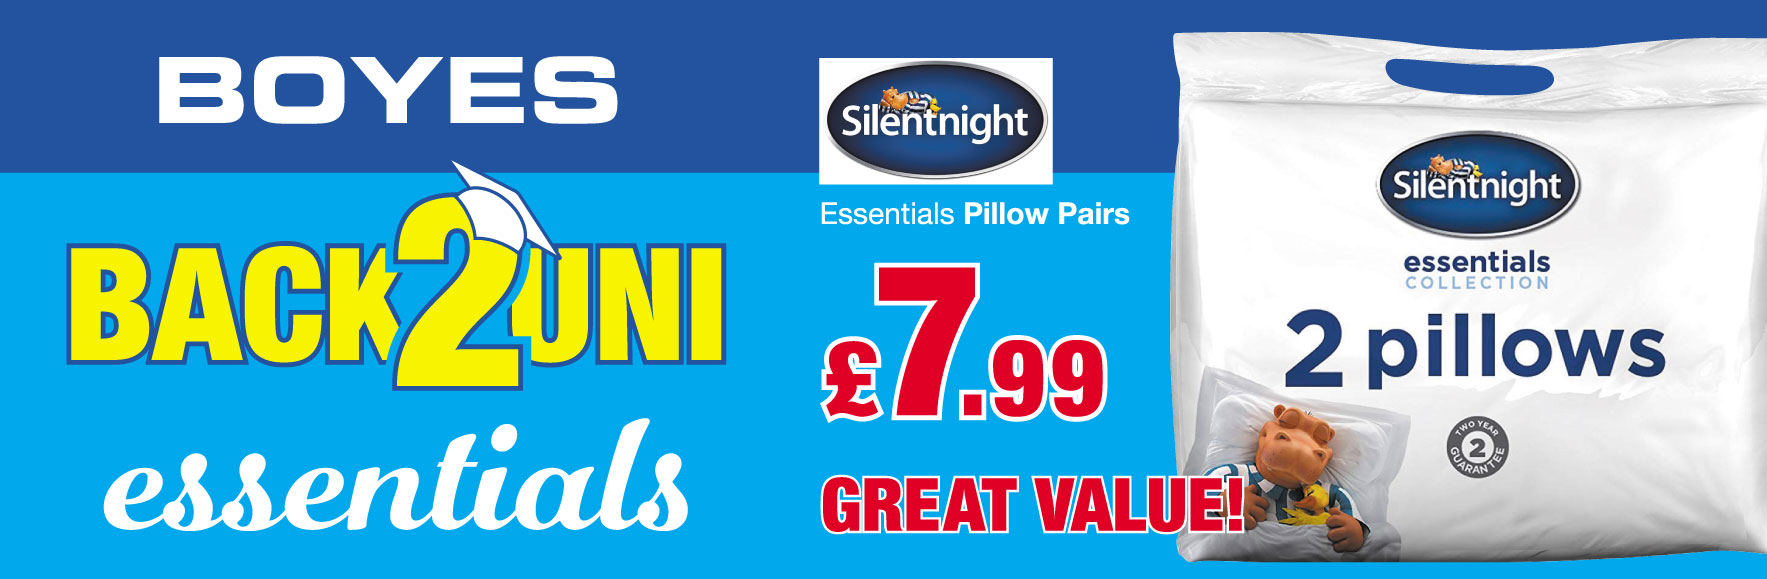 Silentnight Essential Pillow Pairs. £7.99 GREAT VALUE!